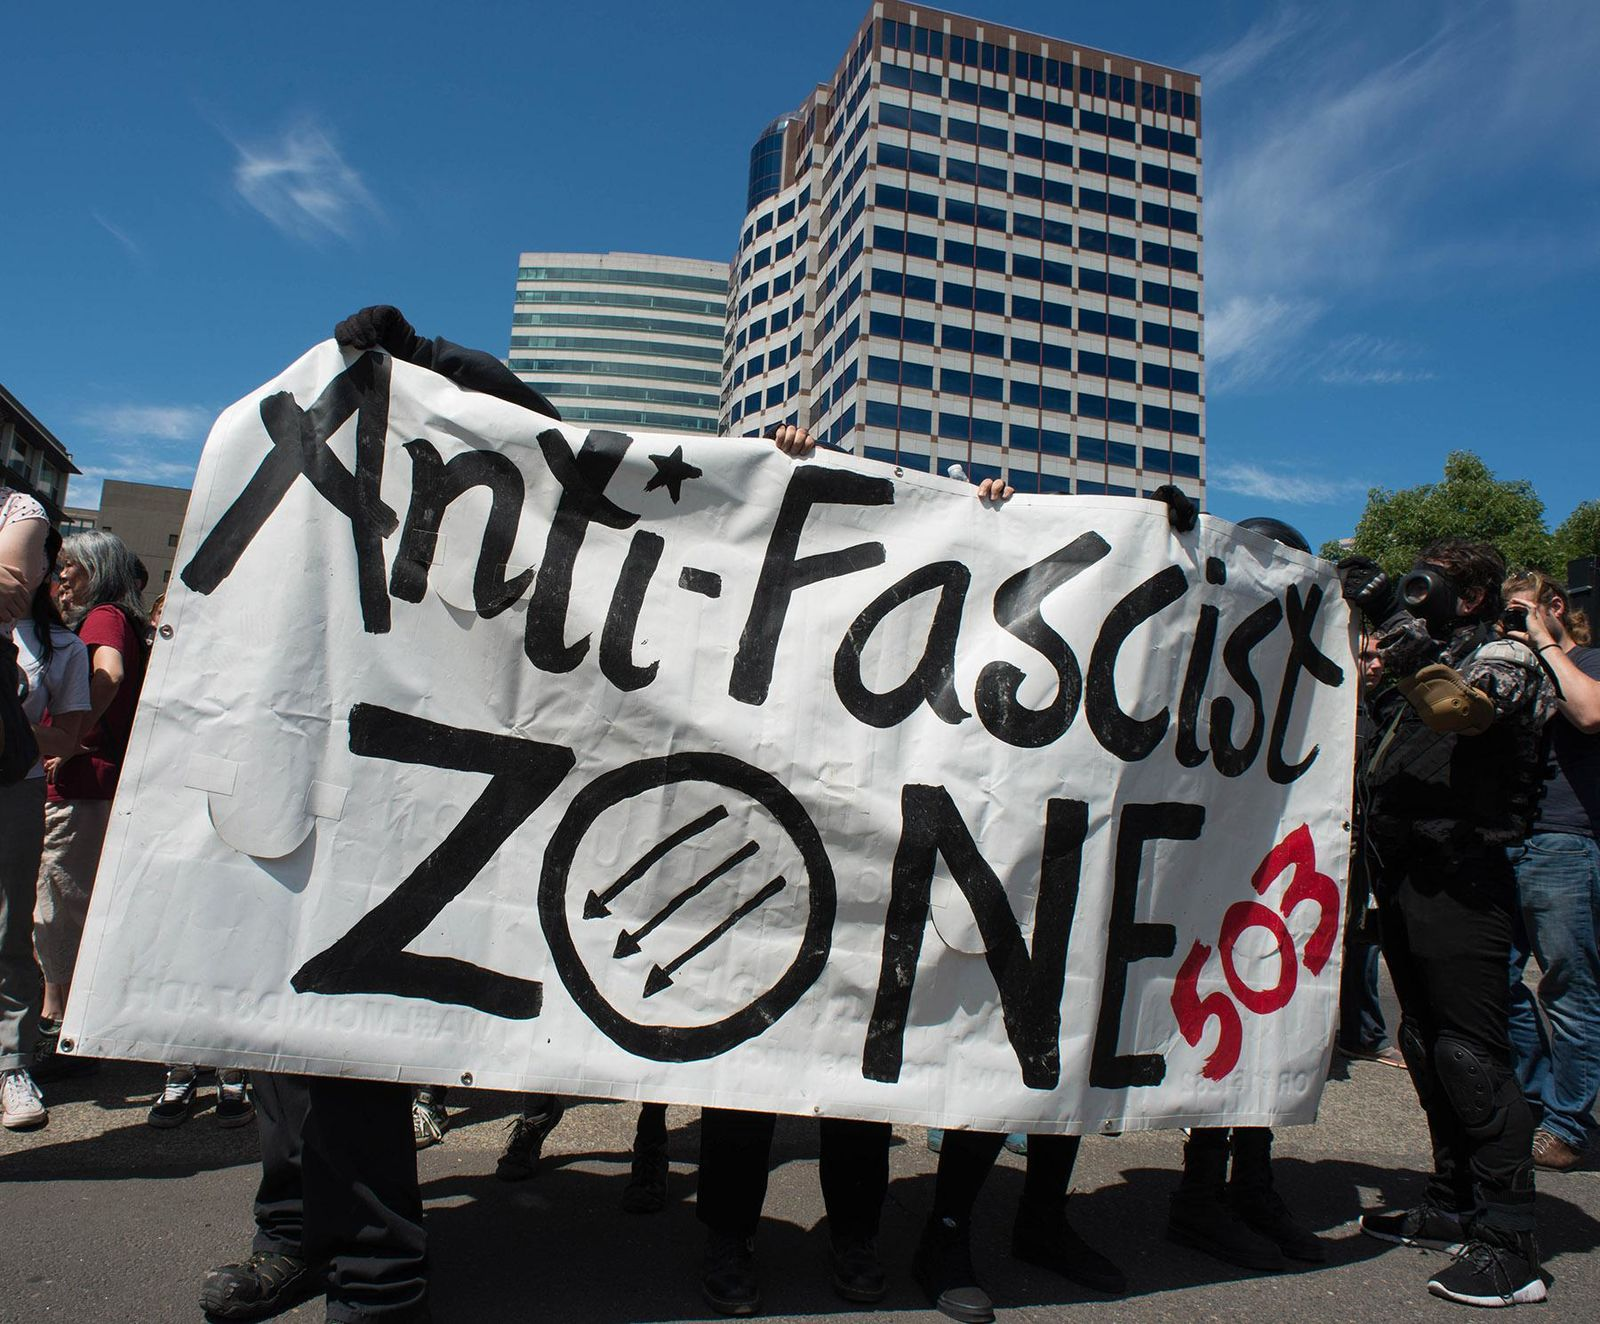 Patriot Prayer, antifa potesters face off at the Portland Waterfront Saturday, August 4, 2018 (KATU photo by Tristan Fortsch on August 4, 2018)